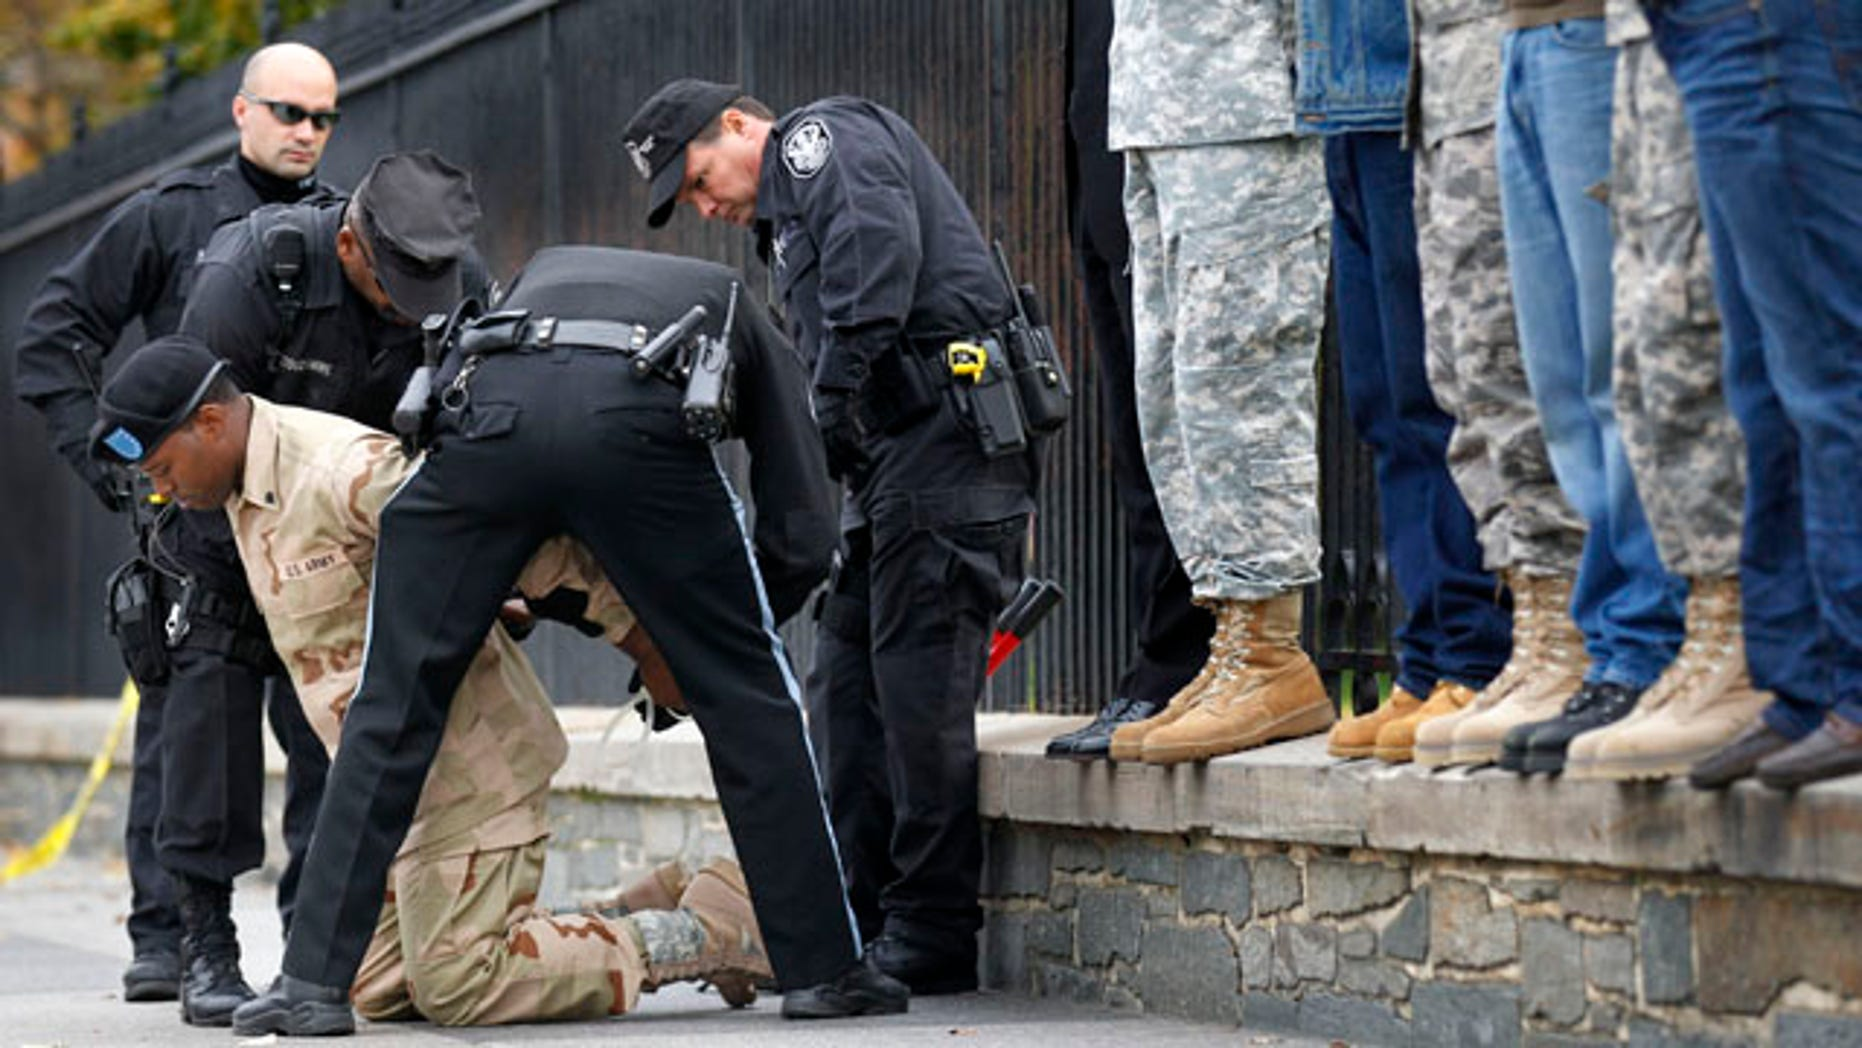 """Nov. 15: U.S. Army Veteran Rob Smith is arrested for handcuffing himself to the fence outside the White House in Washington, D.C., during a protest for gay rights. Smith was part of a group demanding that President Obama make good on his promise to secure the repeal of """"don't ask, don't tell."""""""